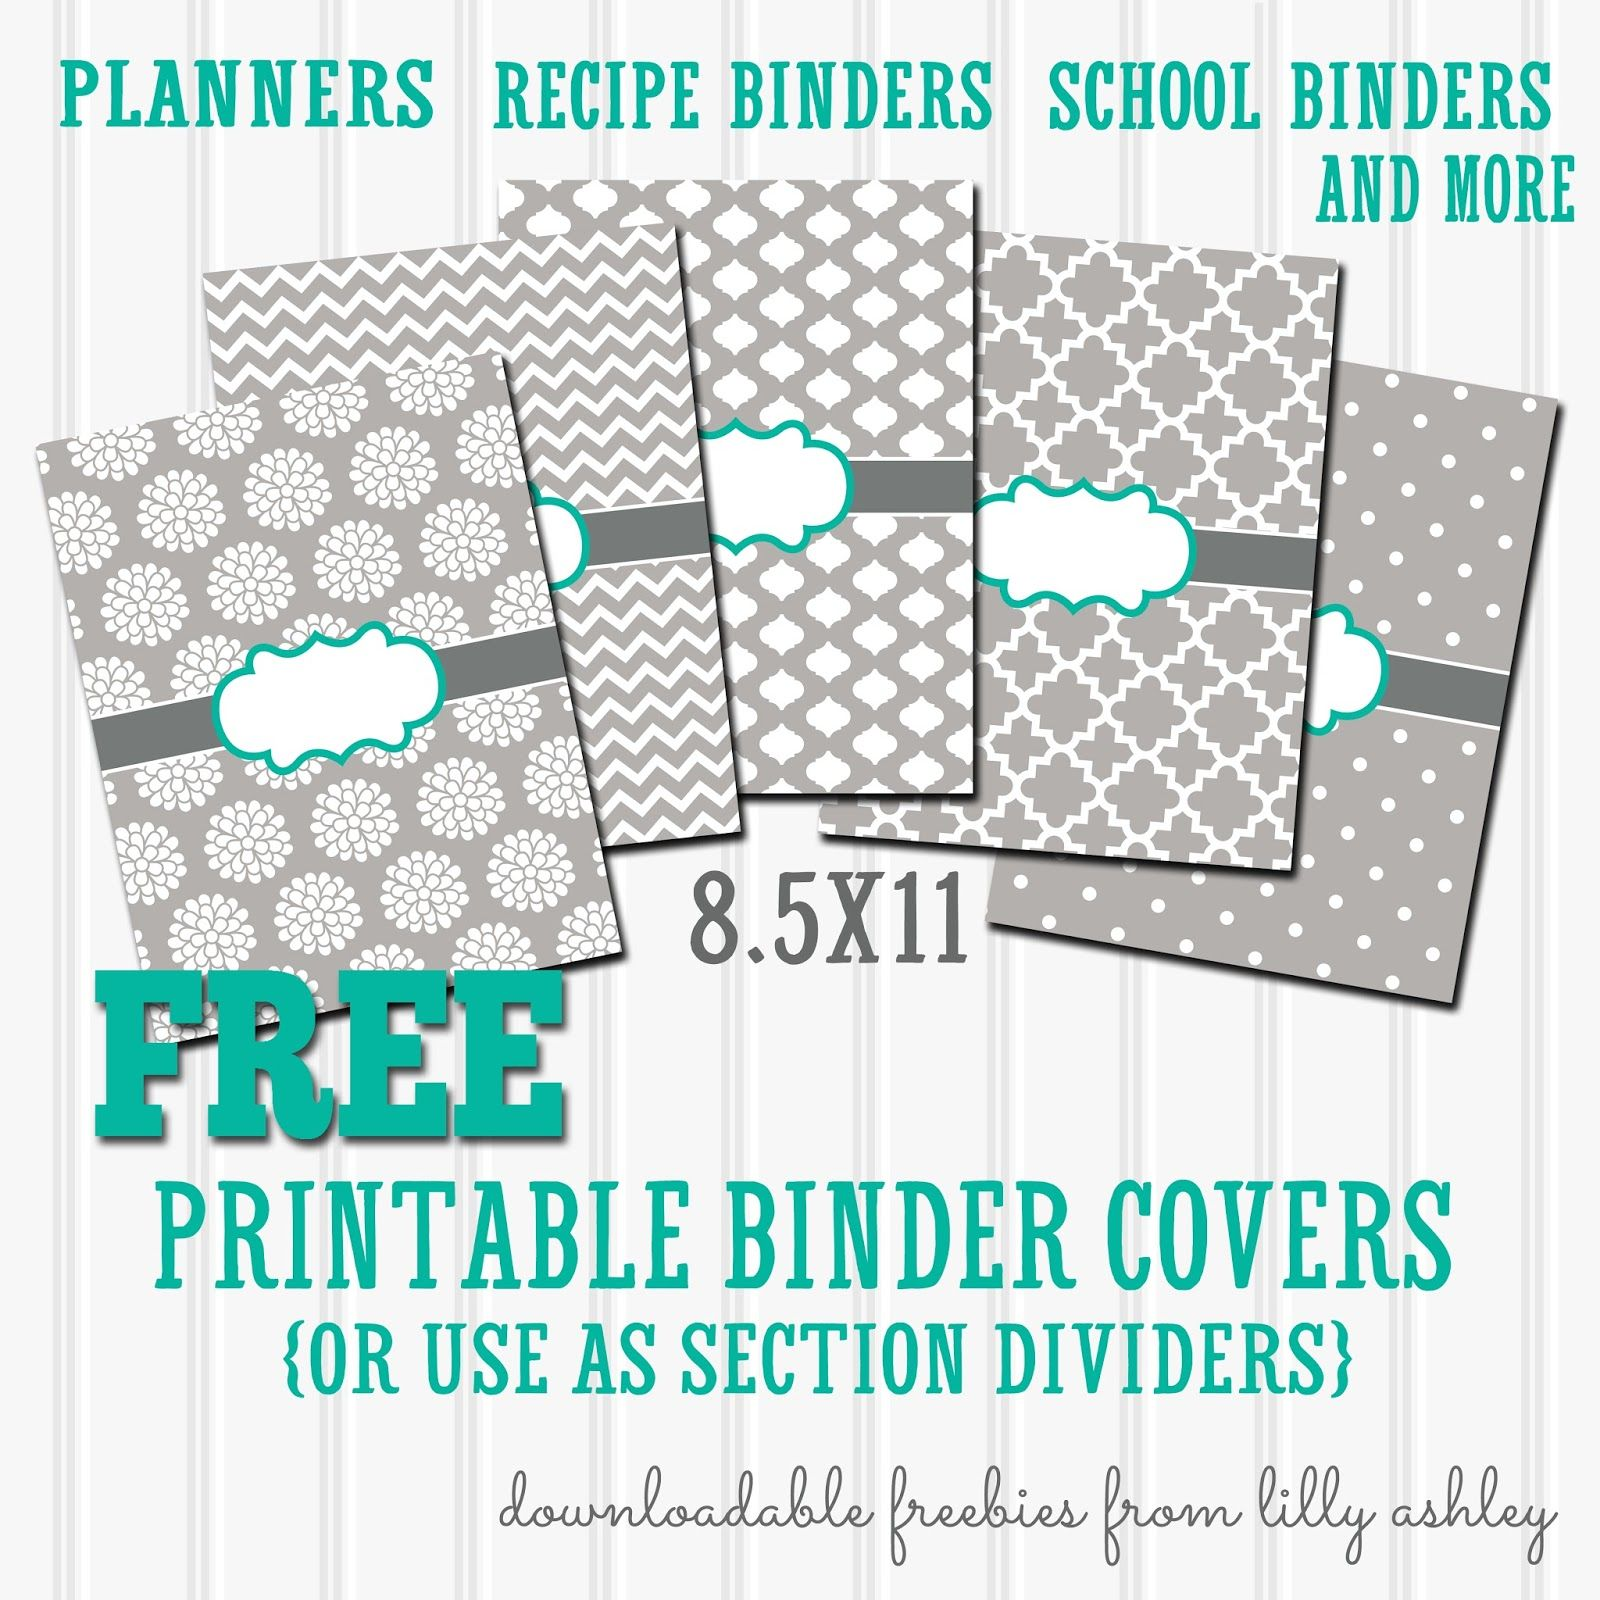 photo regarding Free Printable Binder Covers and Spines identify No cost Binder Handles Printable Preset Preschool Binder addresses